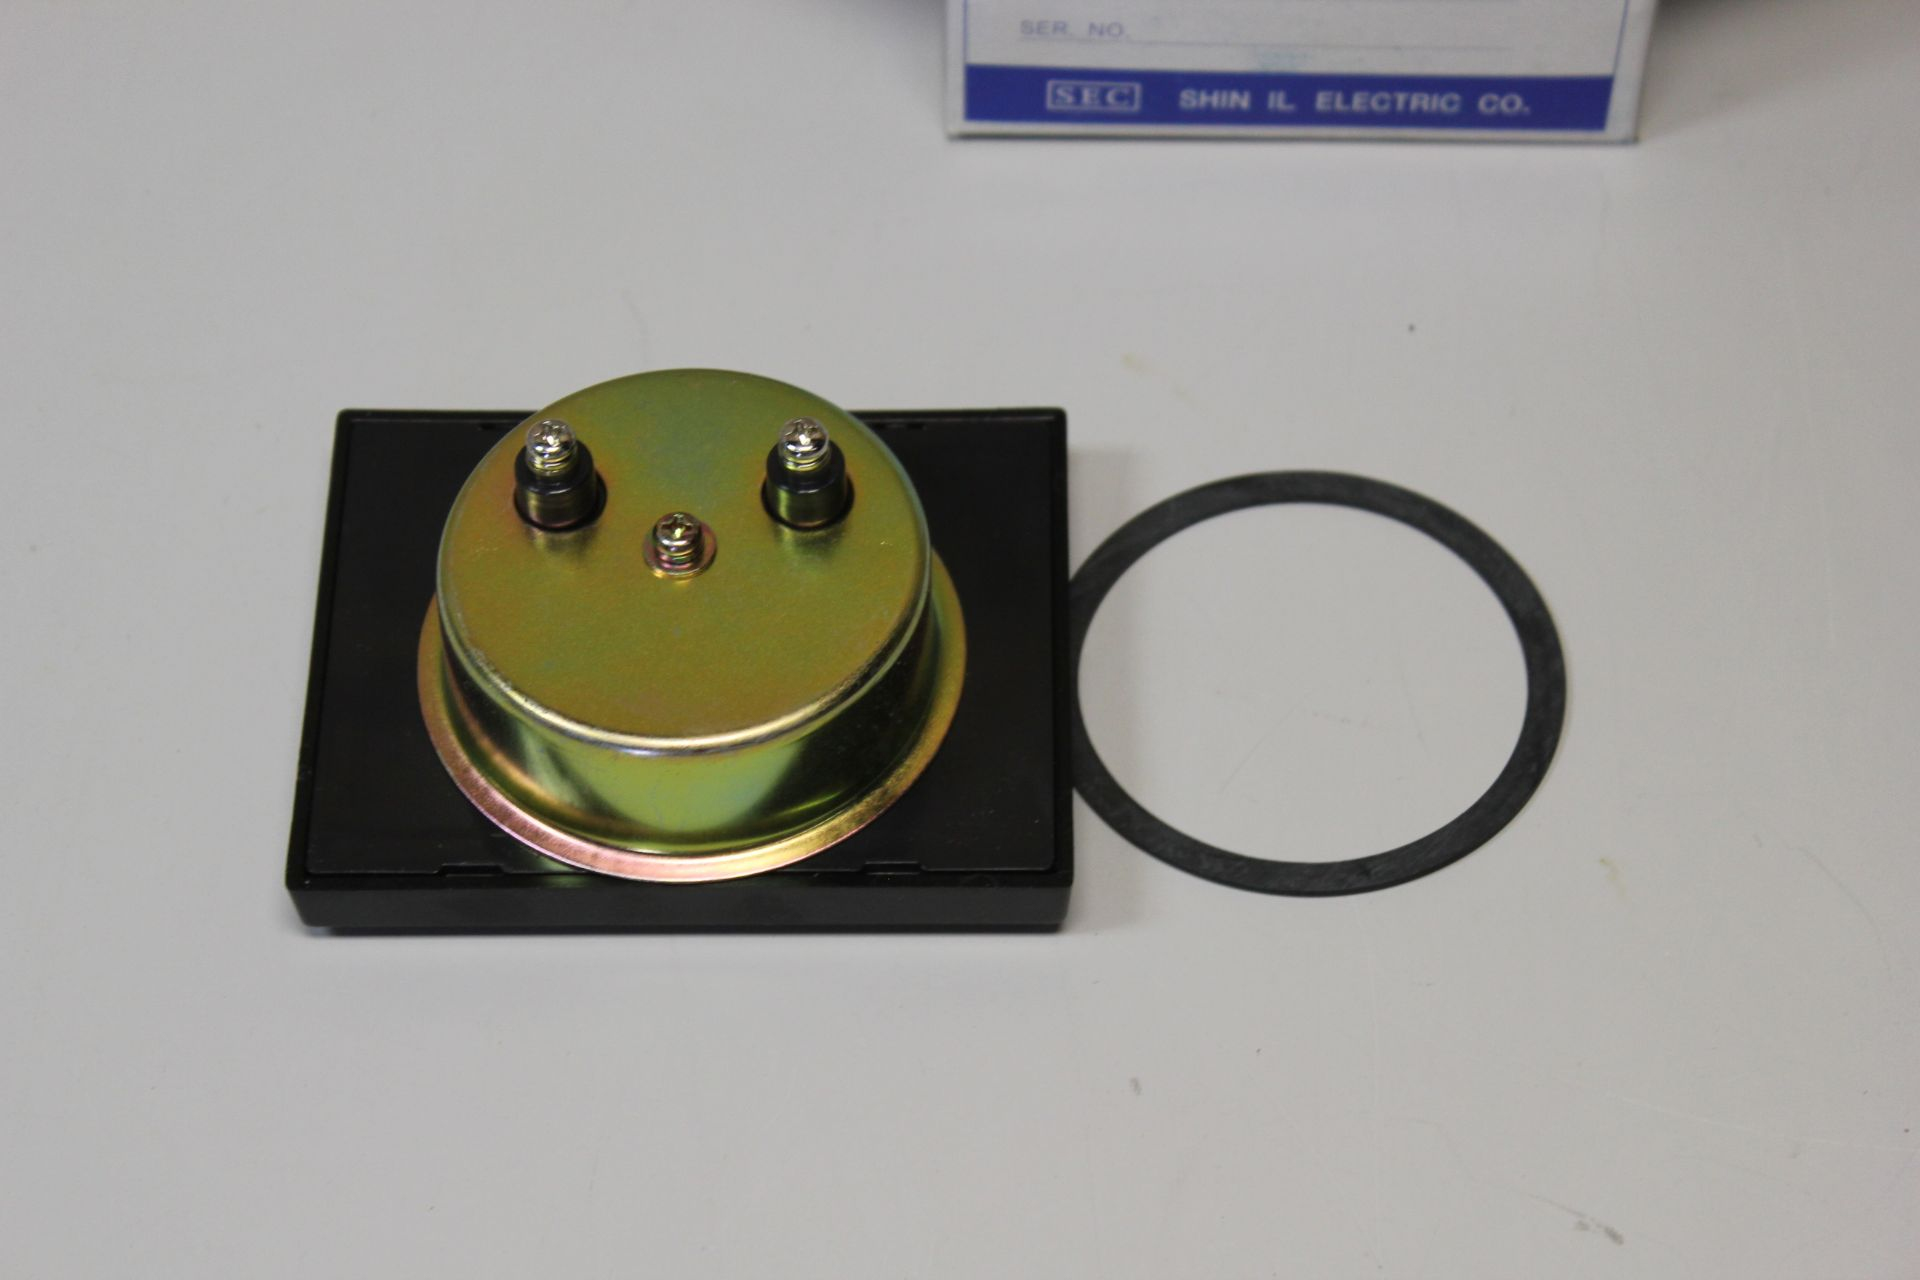 NEW SEC SHIN IL ELECTRIC AMPERES METER - Image 4 of 4